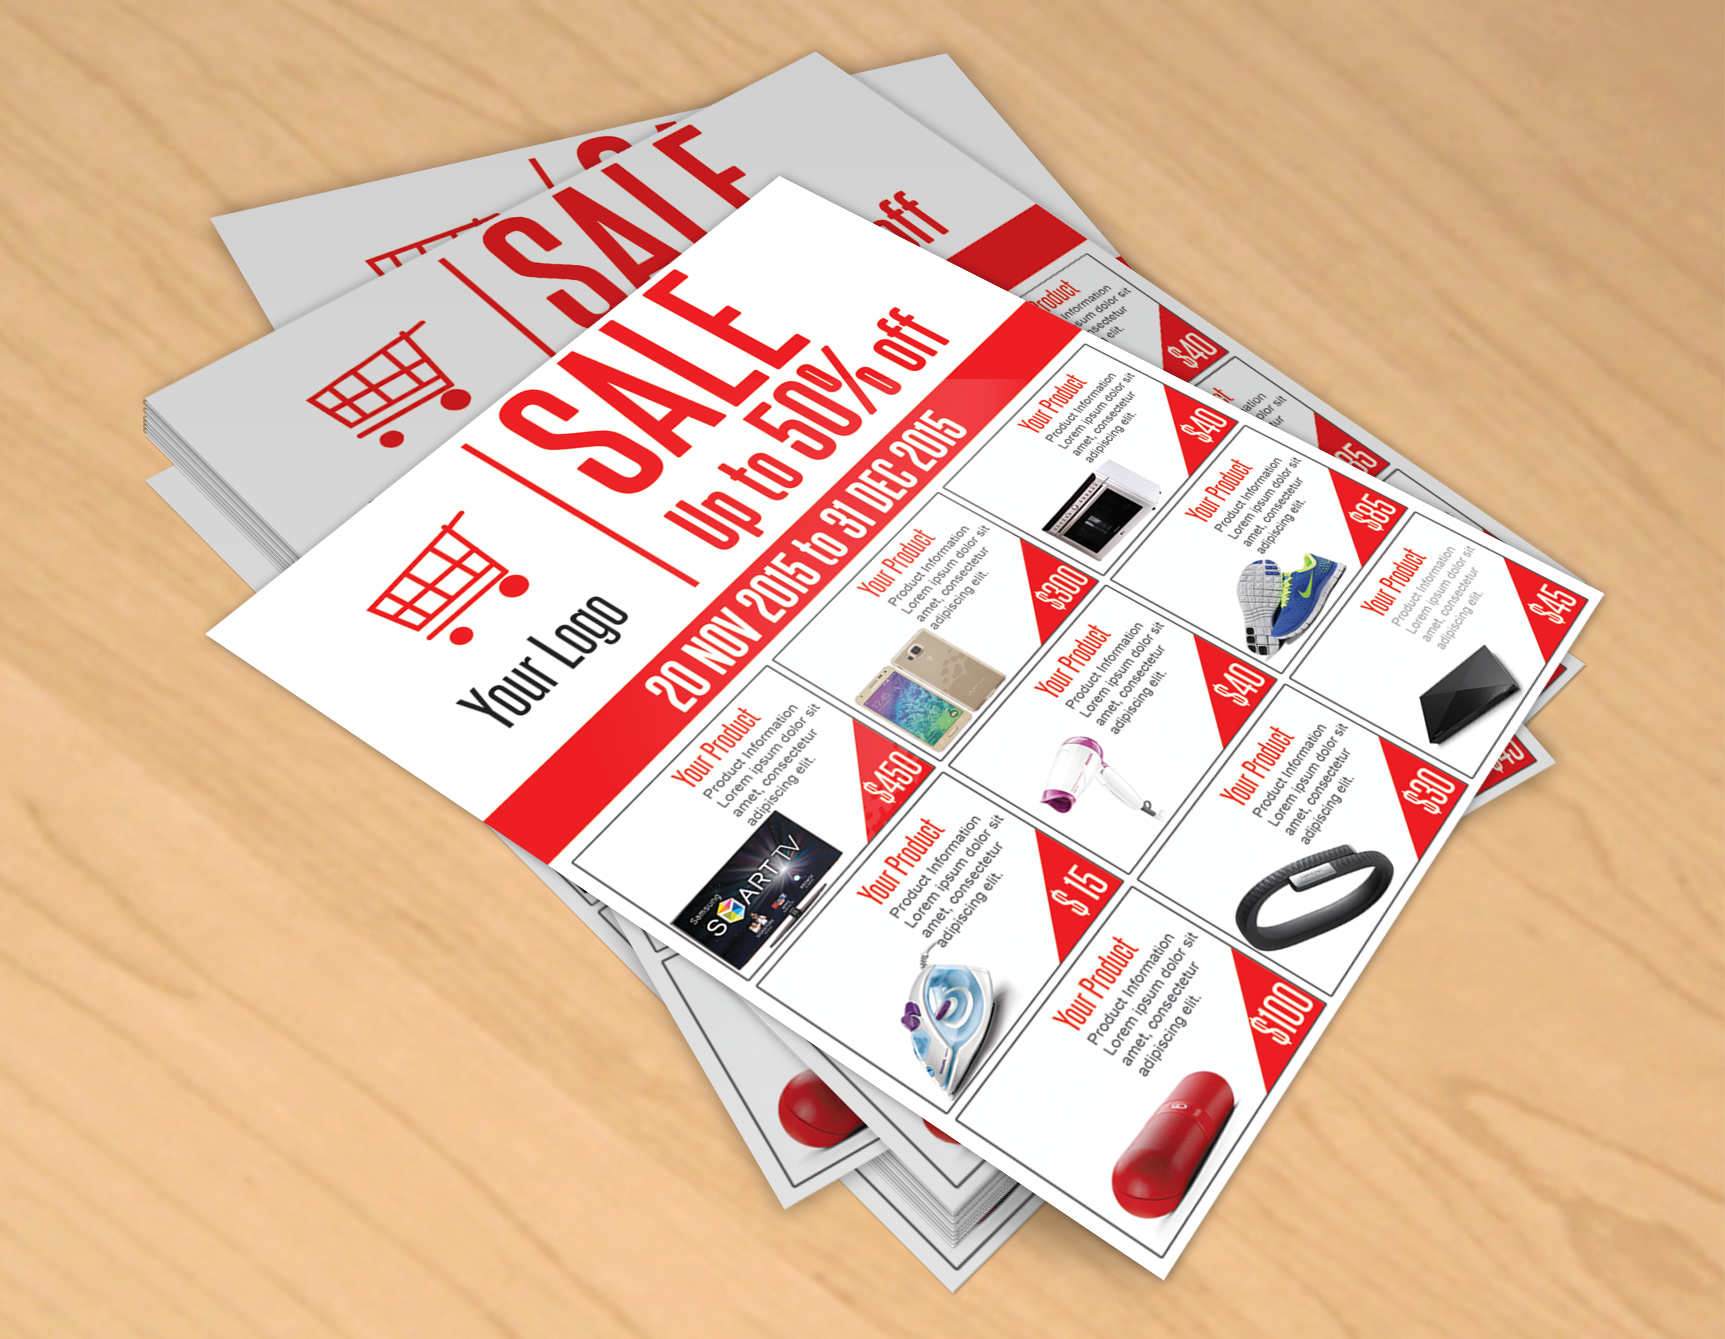 Sale Flyer Free PSD Template Download On Behance - Free templates for brochures and flyers